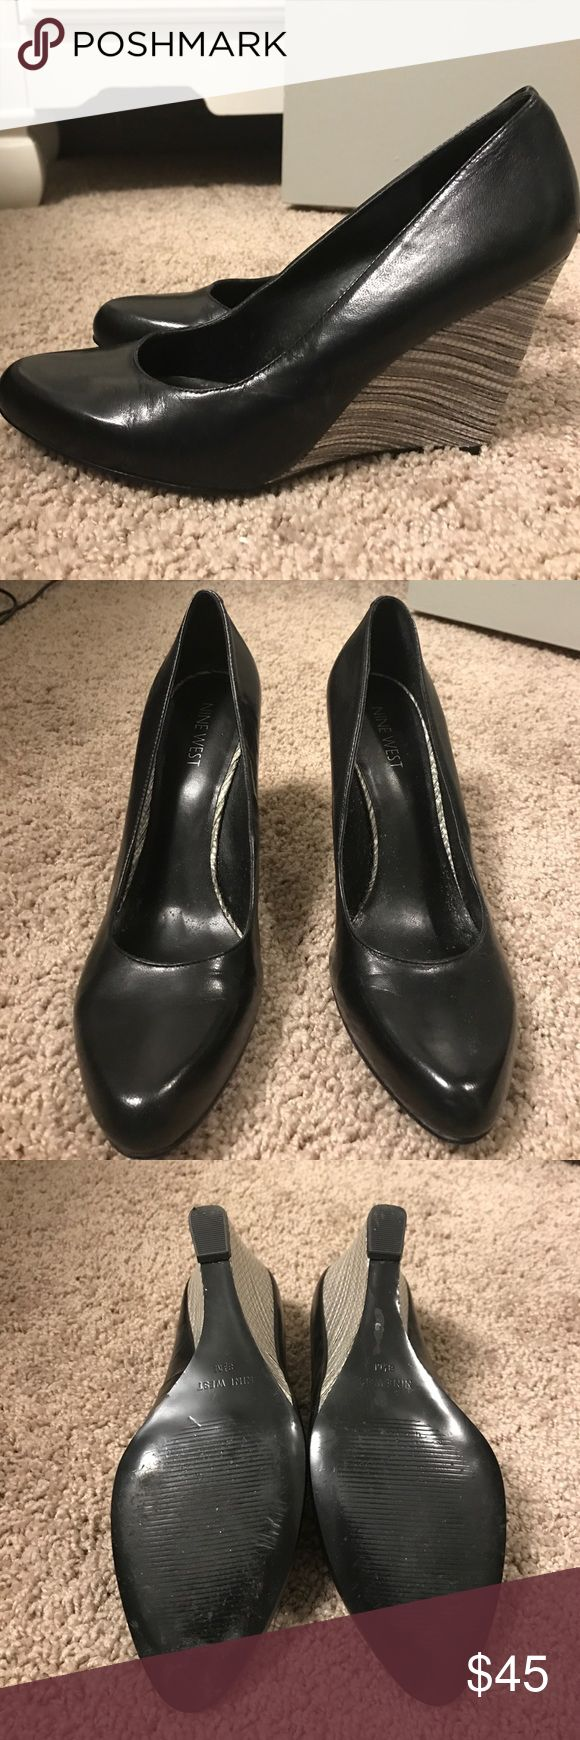 Nine West black and white wedges Worn once, black and white Nine West leather wedges Nine West Shoes Wedges